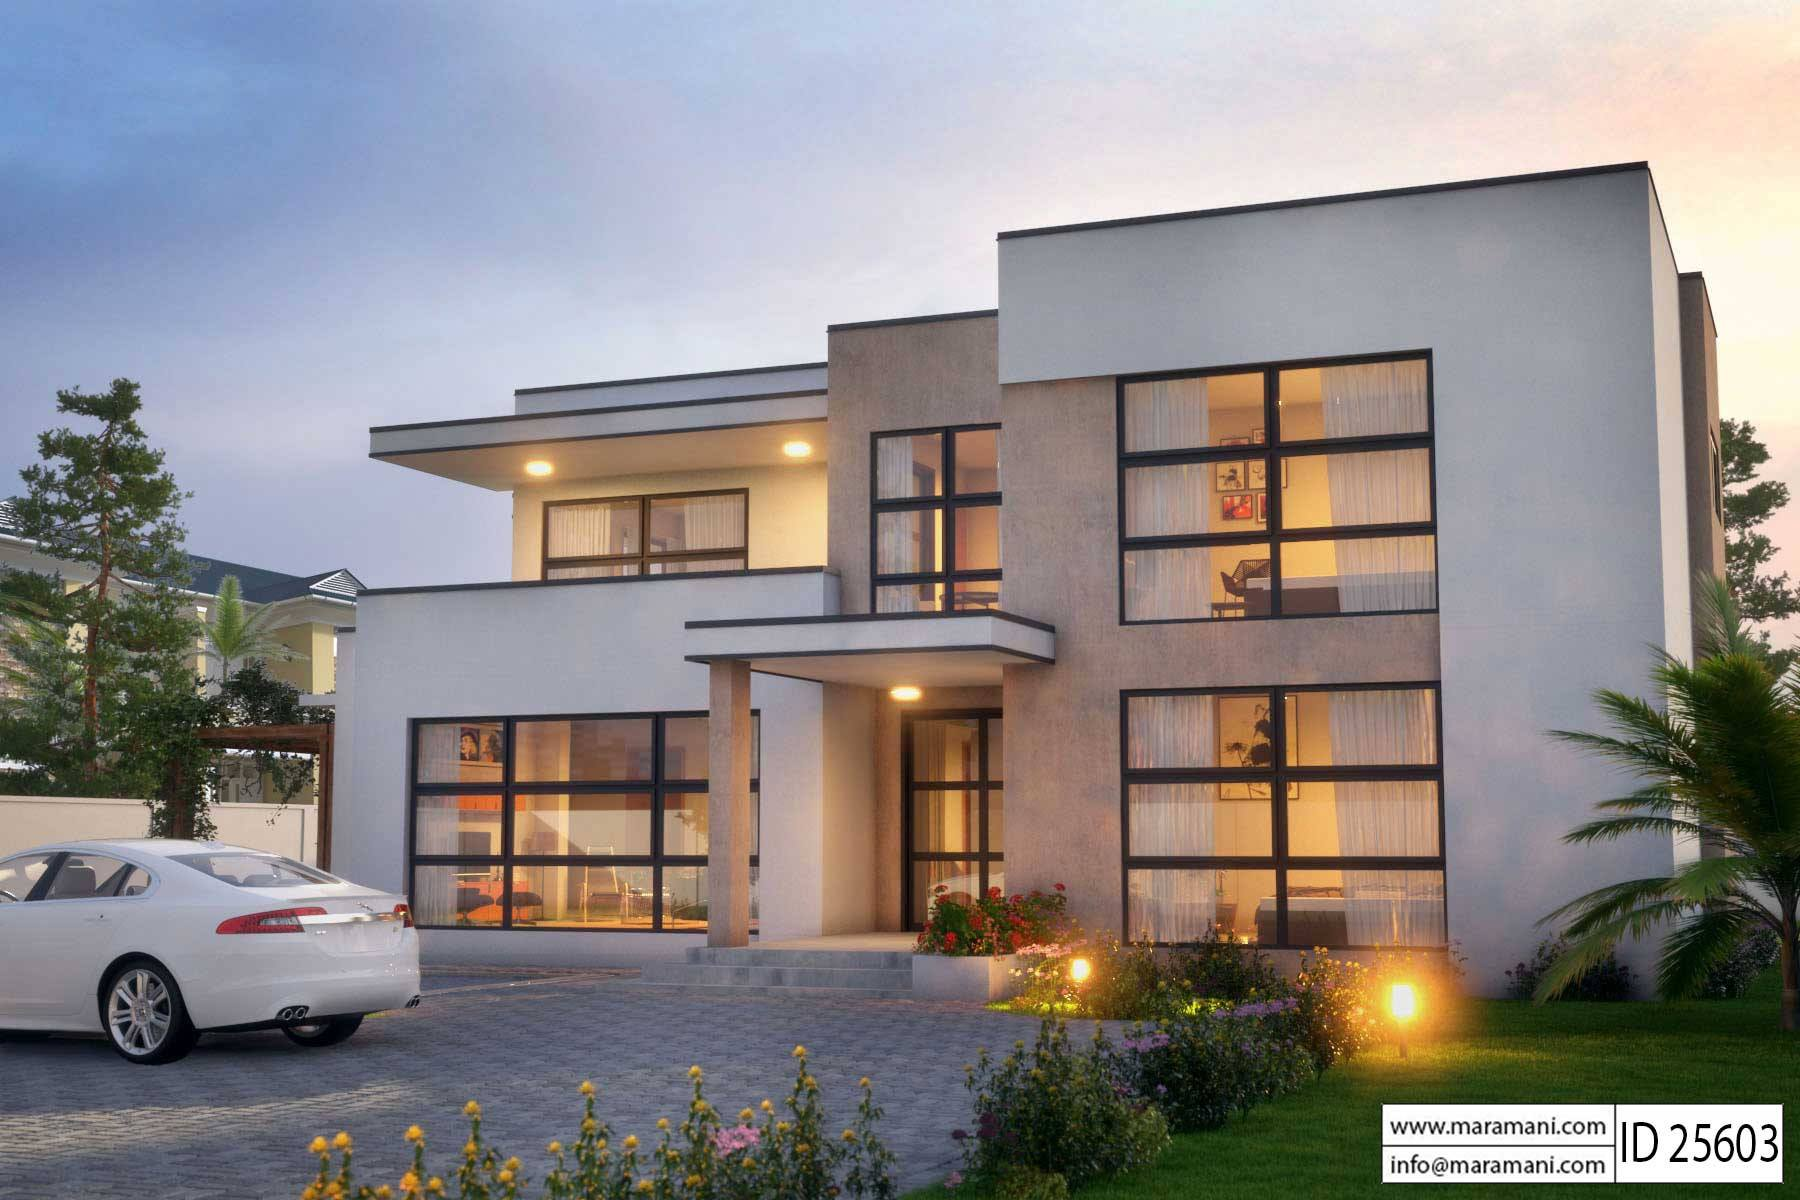 Modern 5 bedroom house design id 25603 floor plans by for 5br house plans